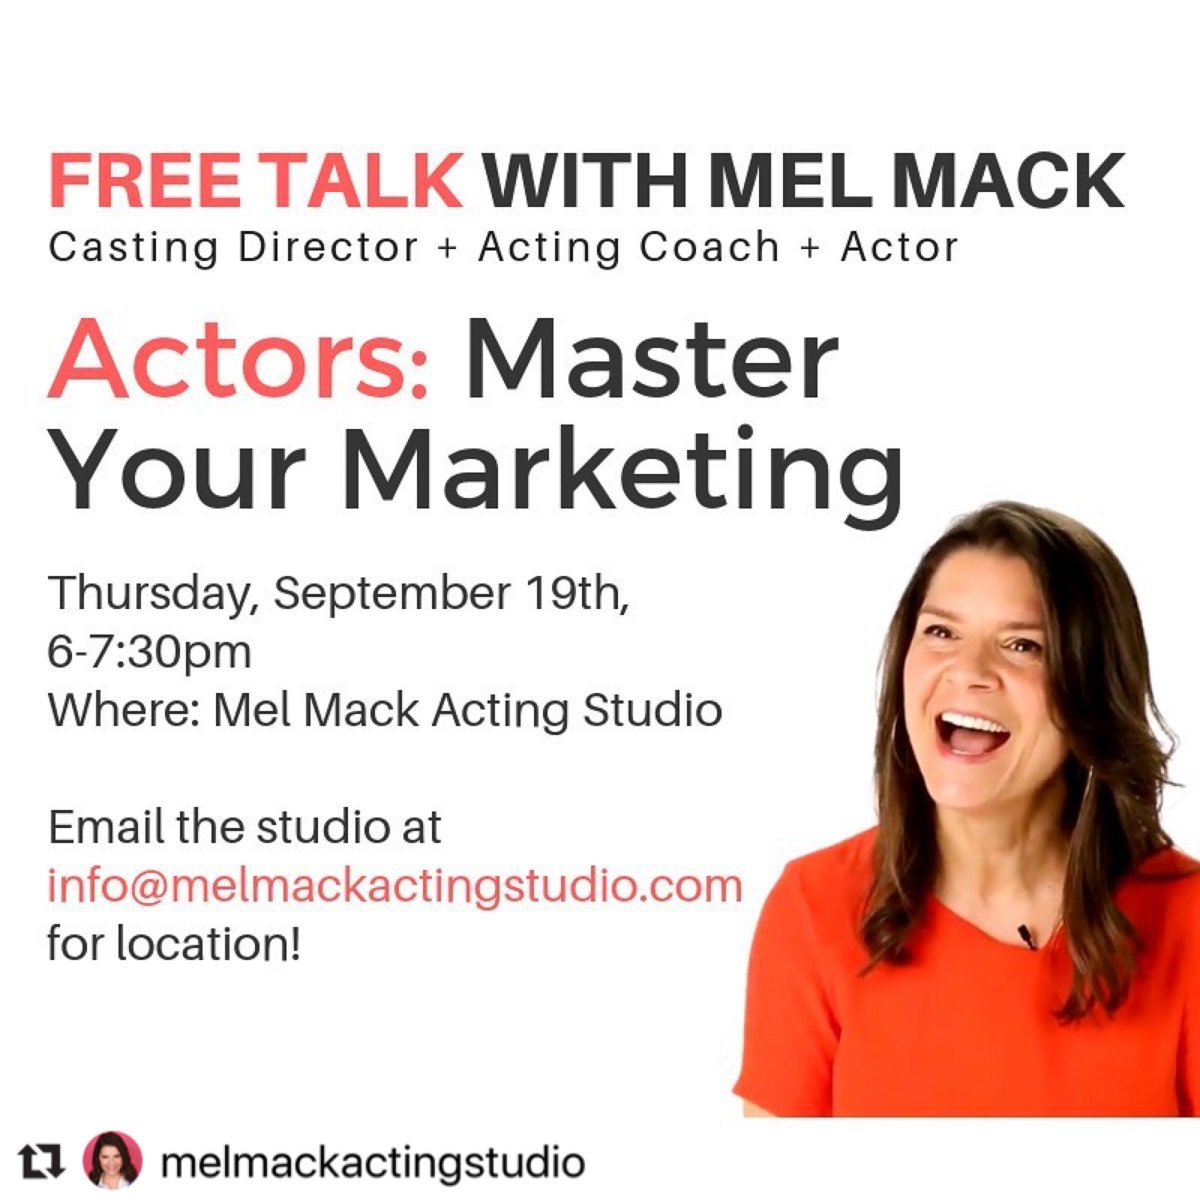 #Repost @melmackactingstudio - Her next FREE TALK is just around the corner! Master Your Marketing. Sept, 19th from 6:00-7:30pm. • • • #actorswithskills #actorshooting #actorsprocess #NYCpic.twitter.com/nHbemCjoKp